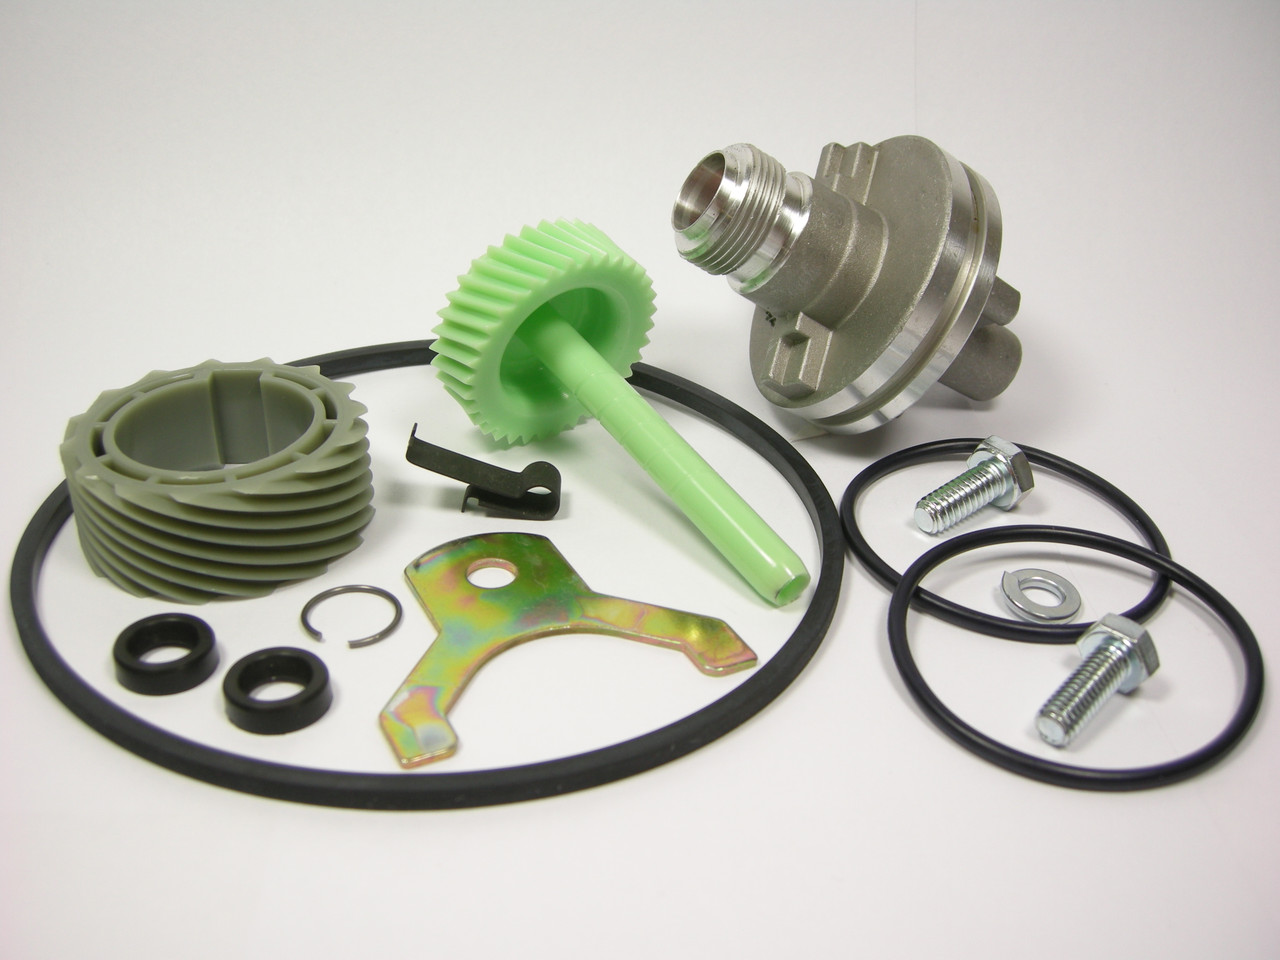 Speedo Driven Gear Kit with Seals 39 Tooth TH350-700R4 Speedometer Gear